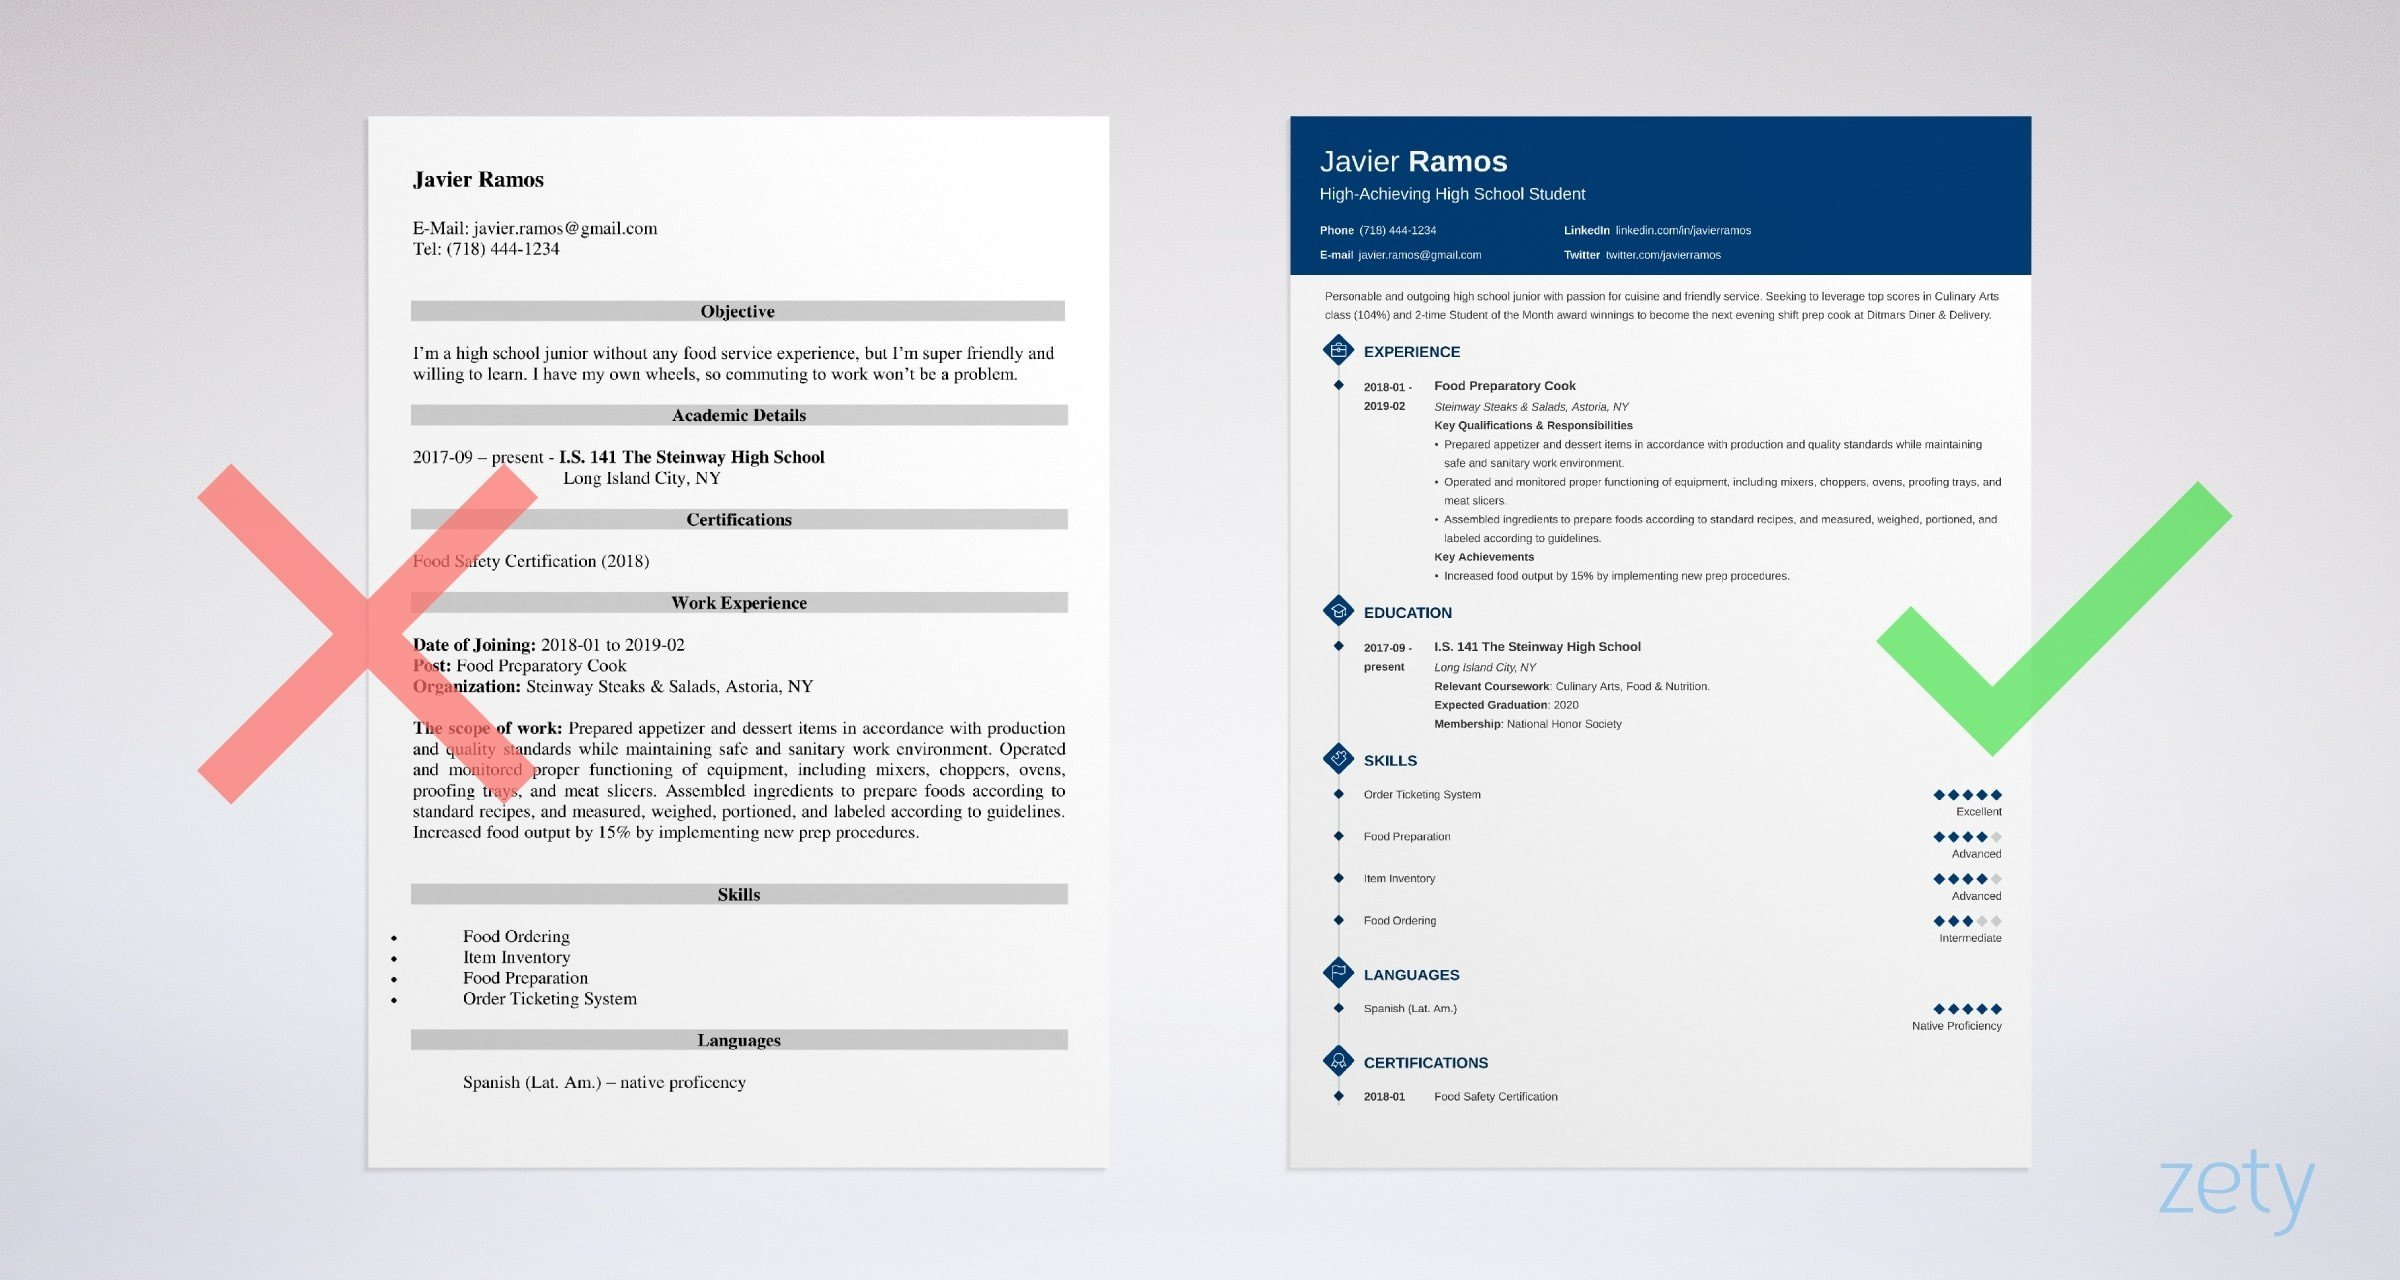 High School Student Resume: Sample & Writing Guide [20+ ...